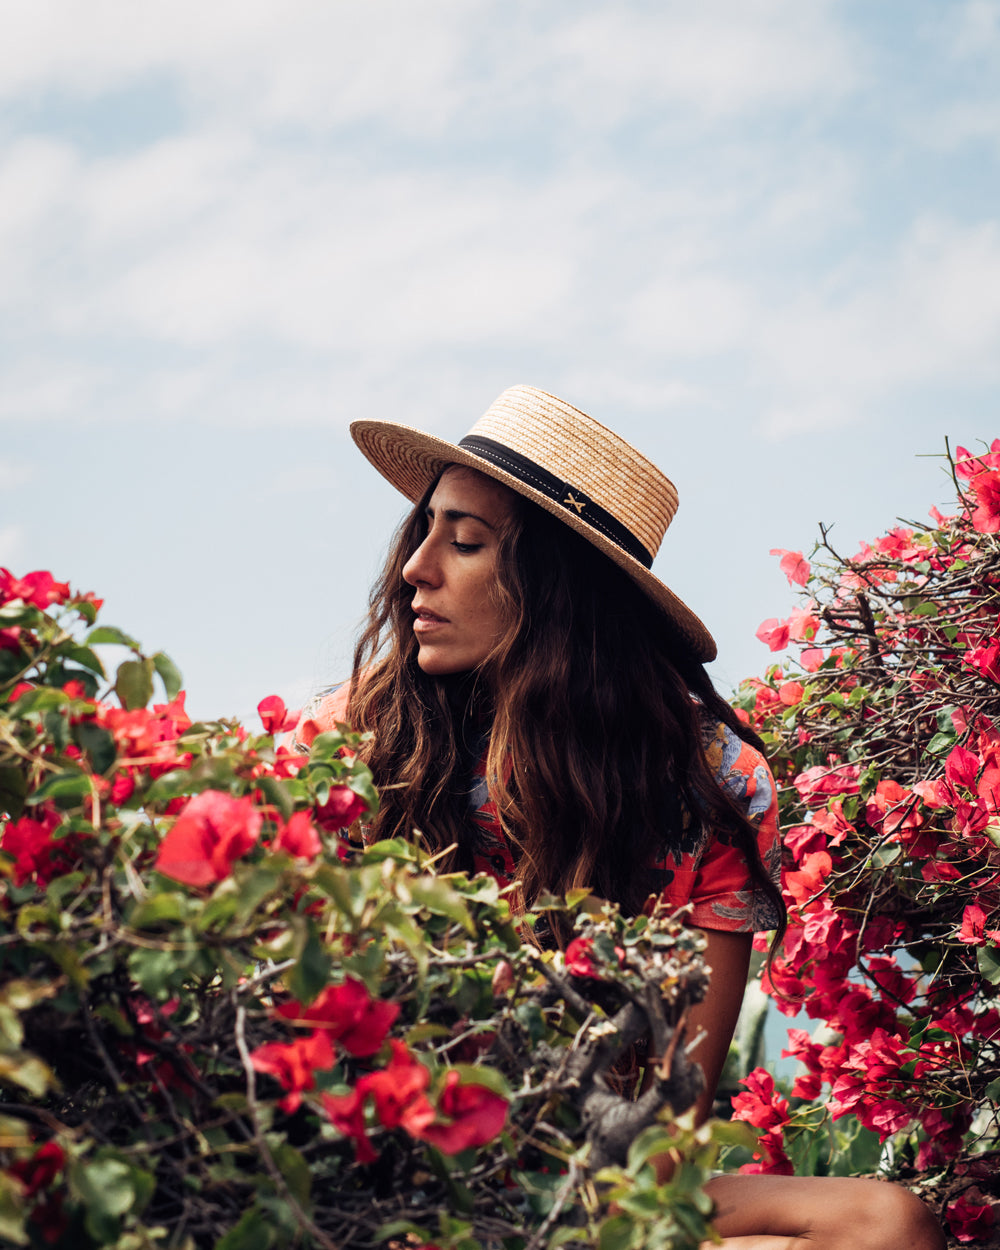 Surfer Lex Weinstein in Banks Journal amongst some flowers